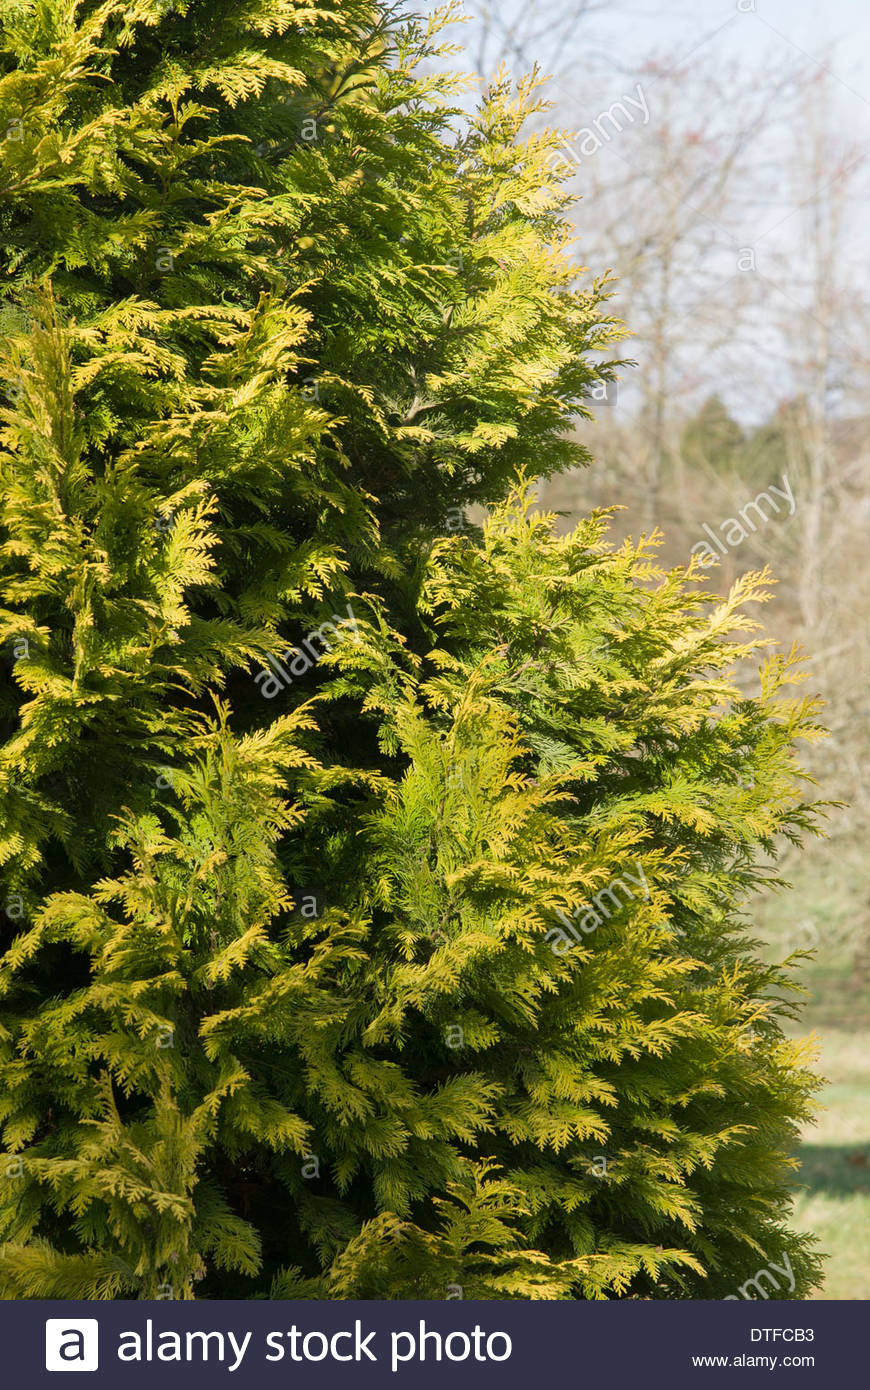 Chamaecyparis lawsoniana 'Moonshine'. - Stock Image